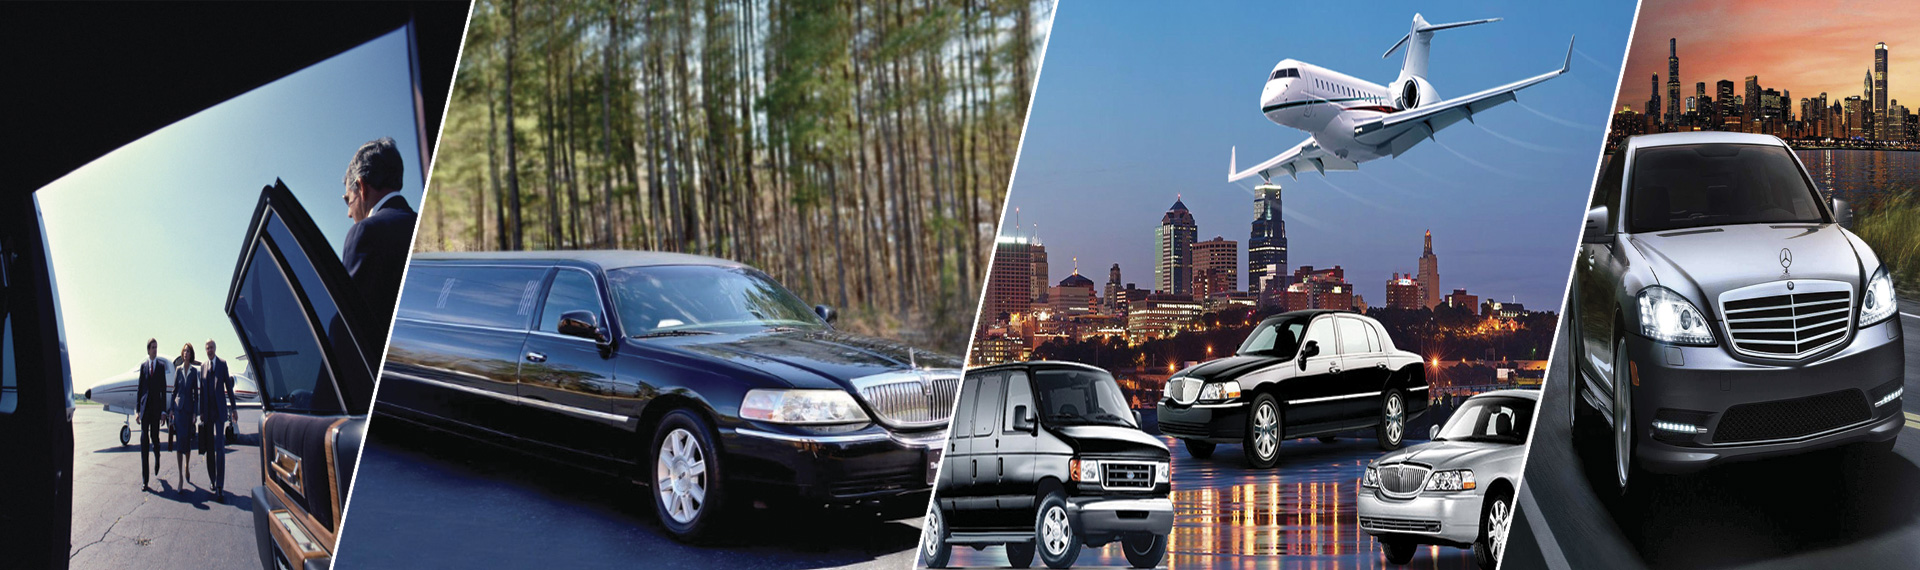 Luxe Limousine Lansdale PA